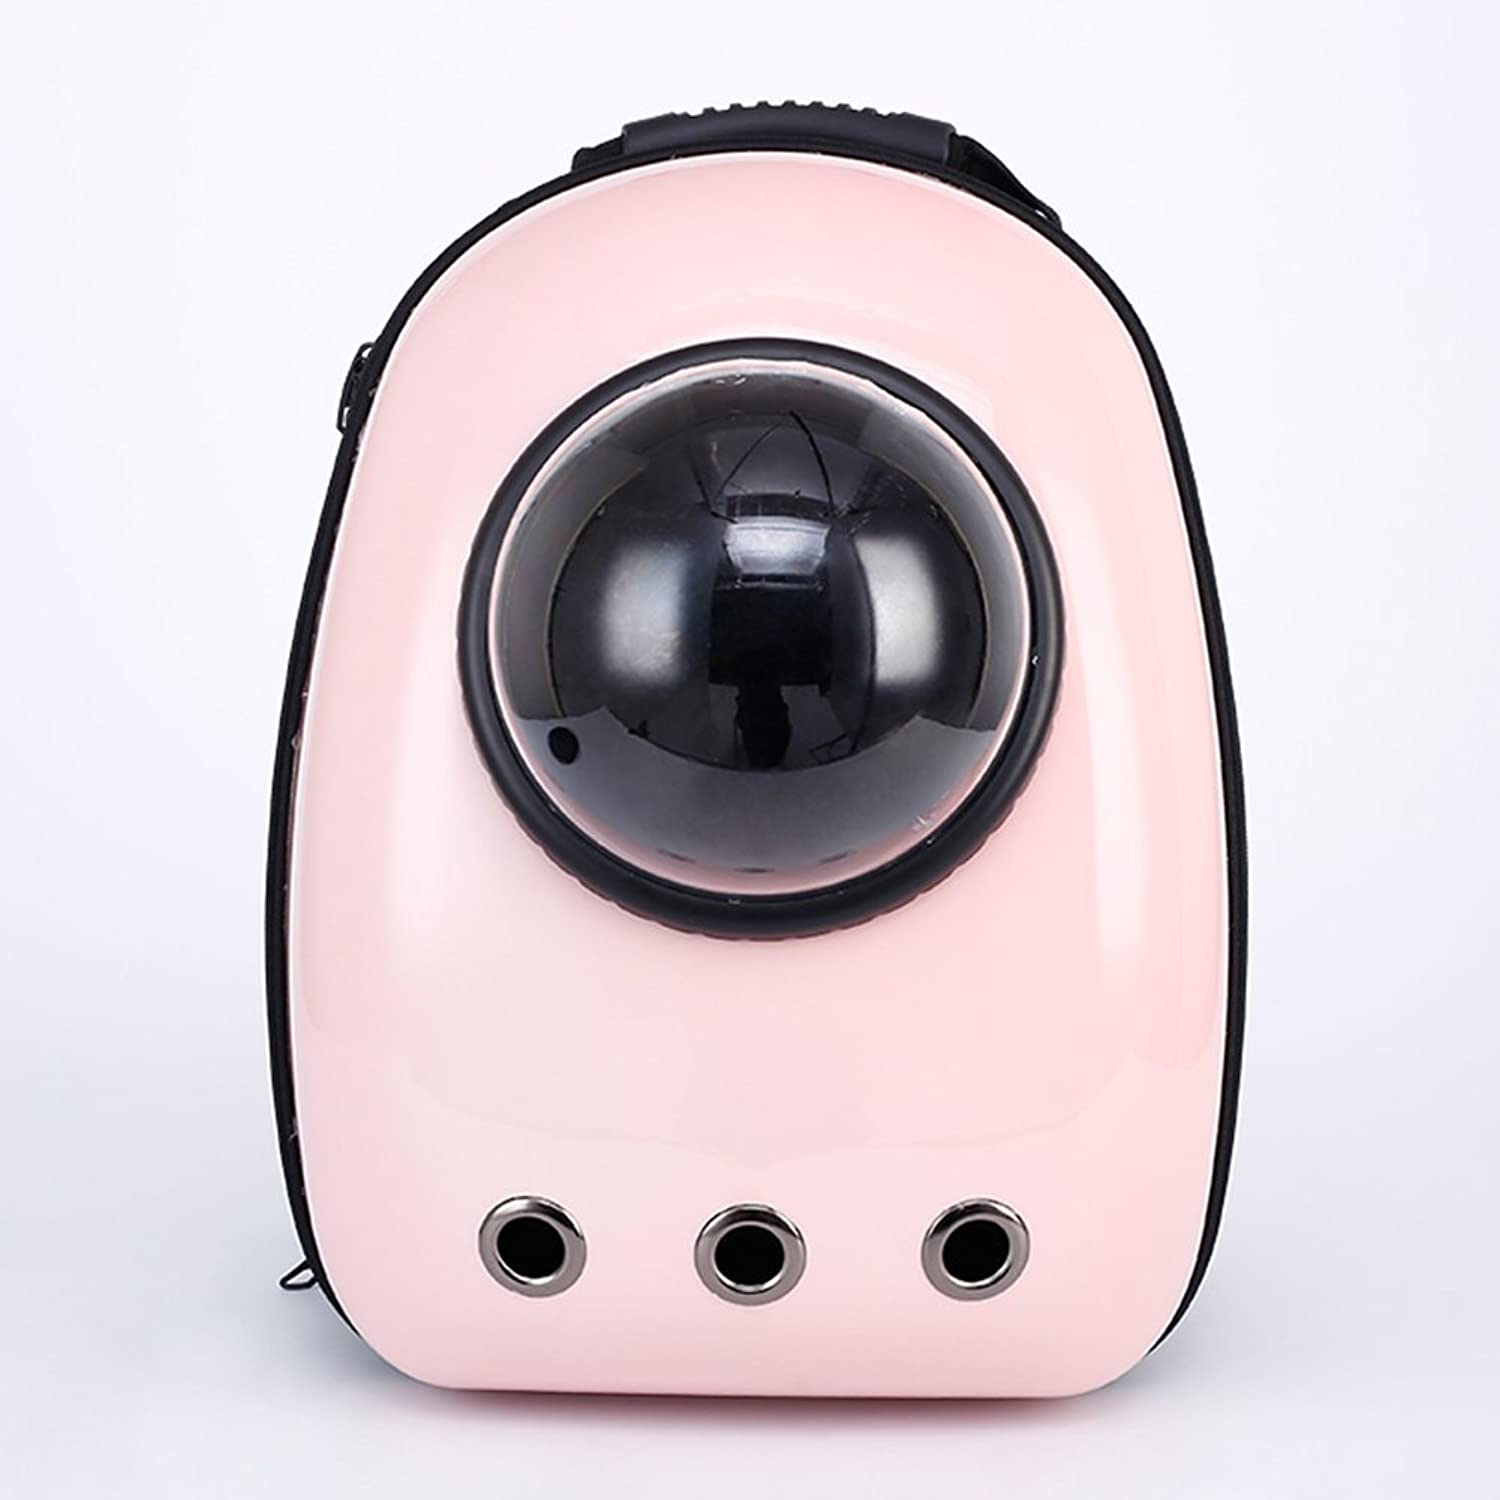 M3M Pet Carriers Backpack Waterproof Breathable SemiSphere Traveler Soft for Cats and Dogs Puppy Outdoor Travel Walking,3